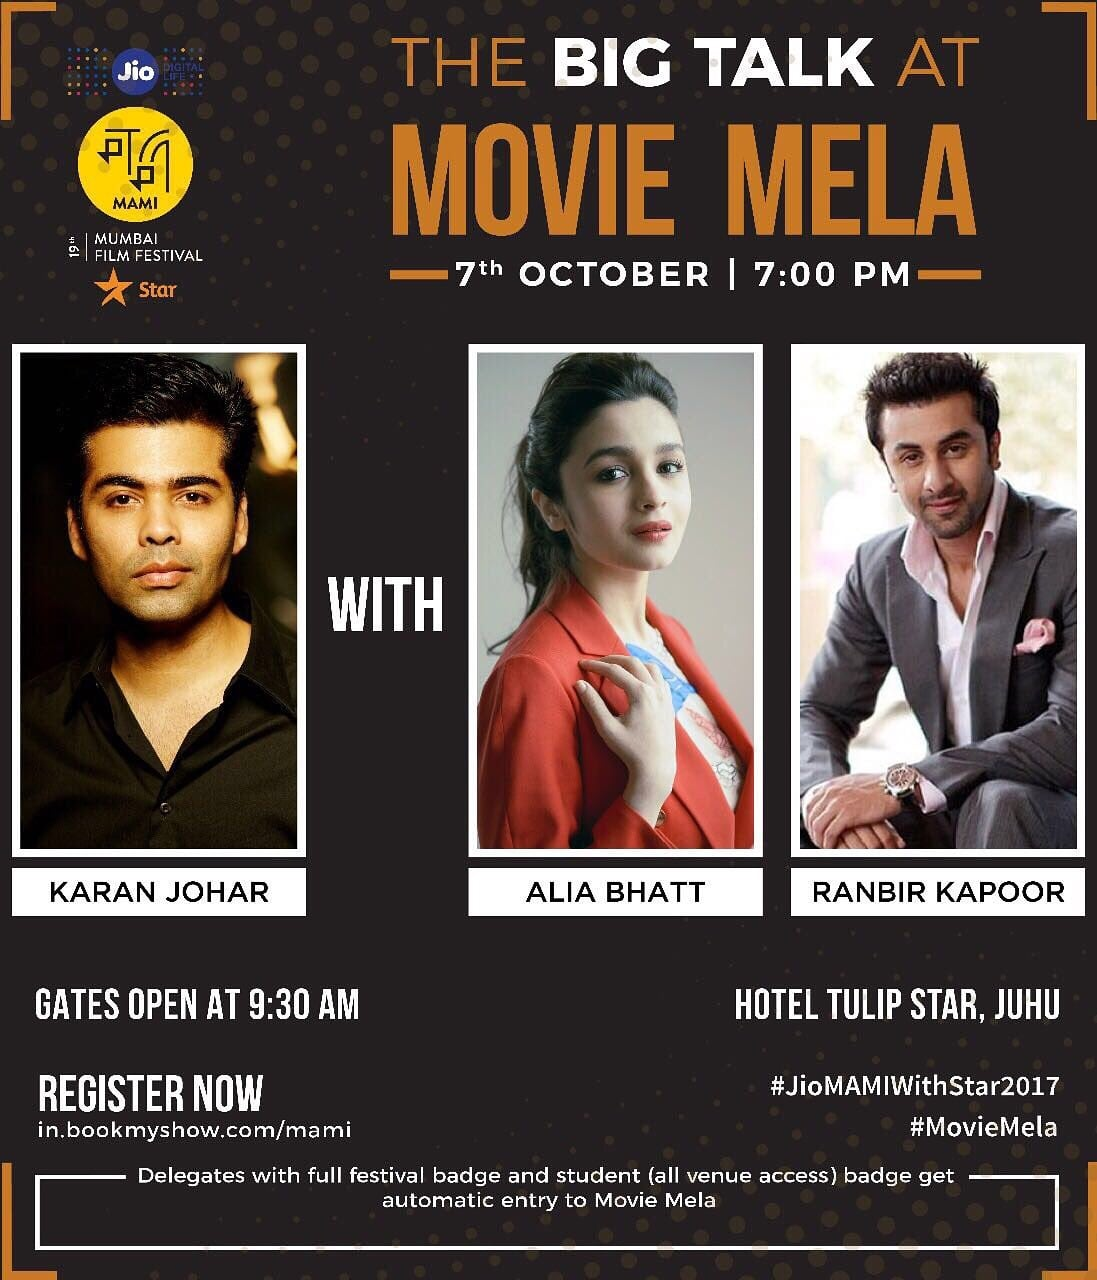 MAMI Movie Mela: Guess How Much Money Are Bollywood Celebs Charging To Attend The Event?